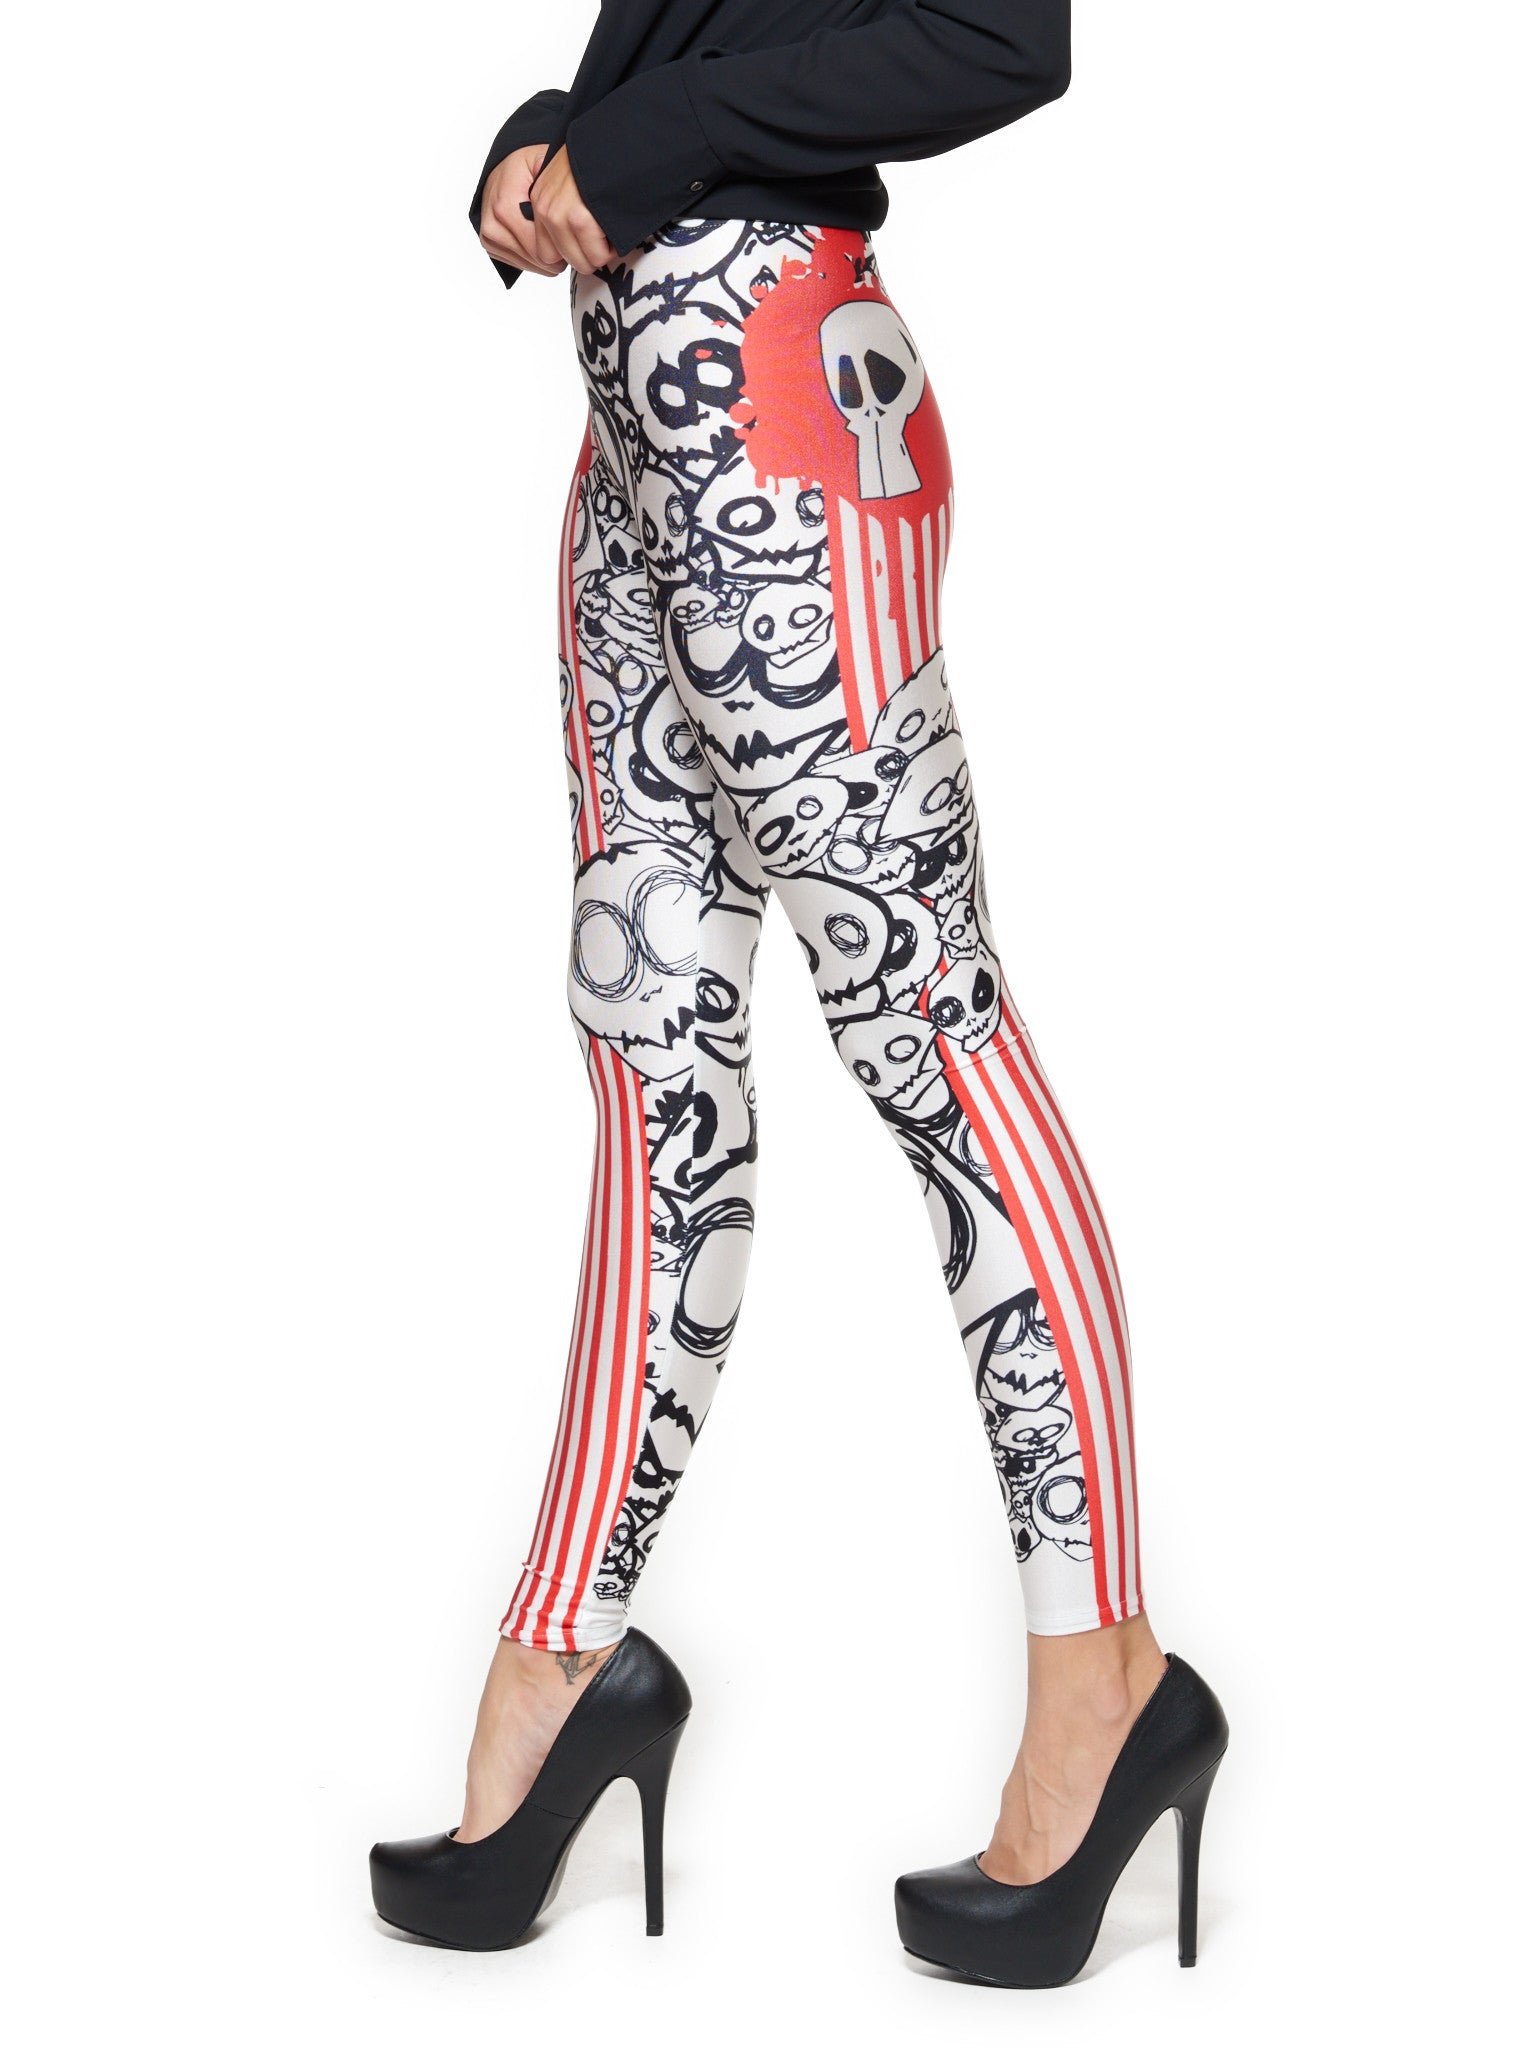 Monster Queen West Leggings - Nuvango  - 4